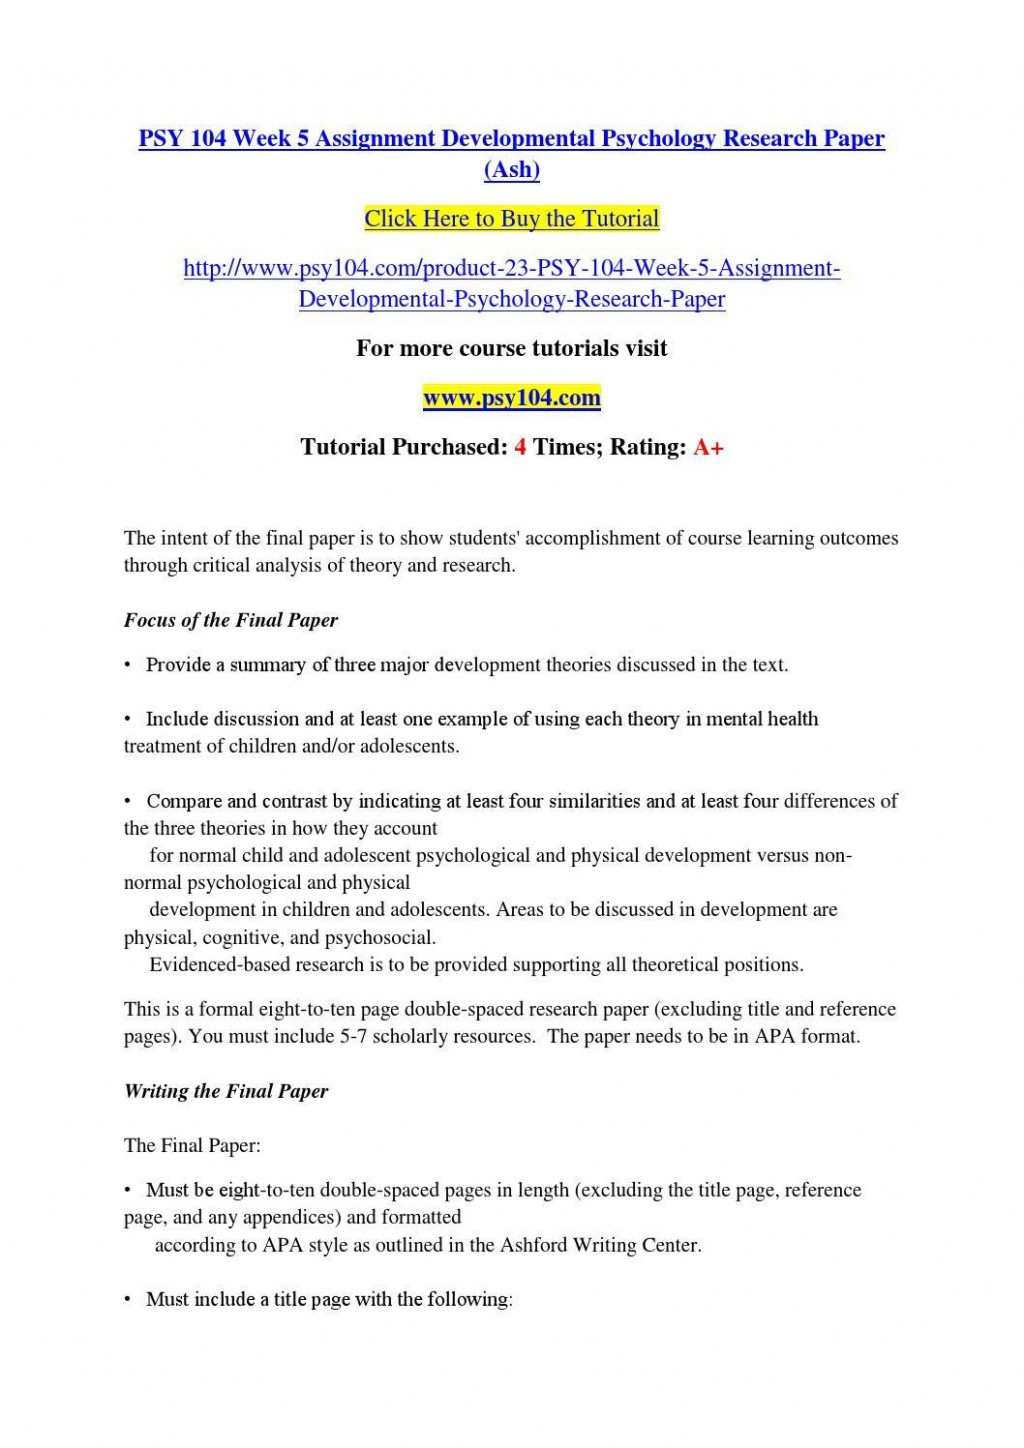 017 Developmental Psychology Essay Ideas Structure Psychological20ent Paper Topics Pdf20 Shocking Research Topic For College Students Computer Science Nursing Large